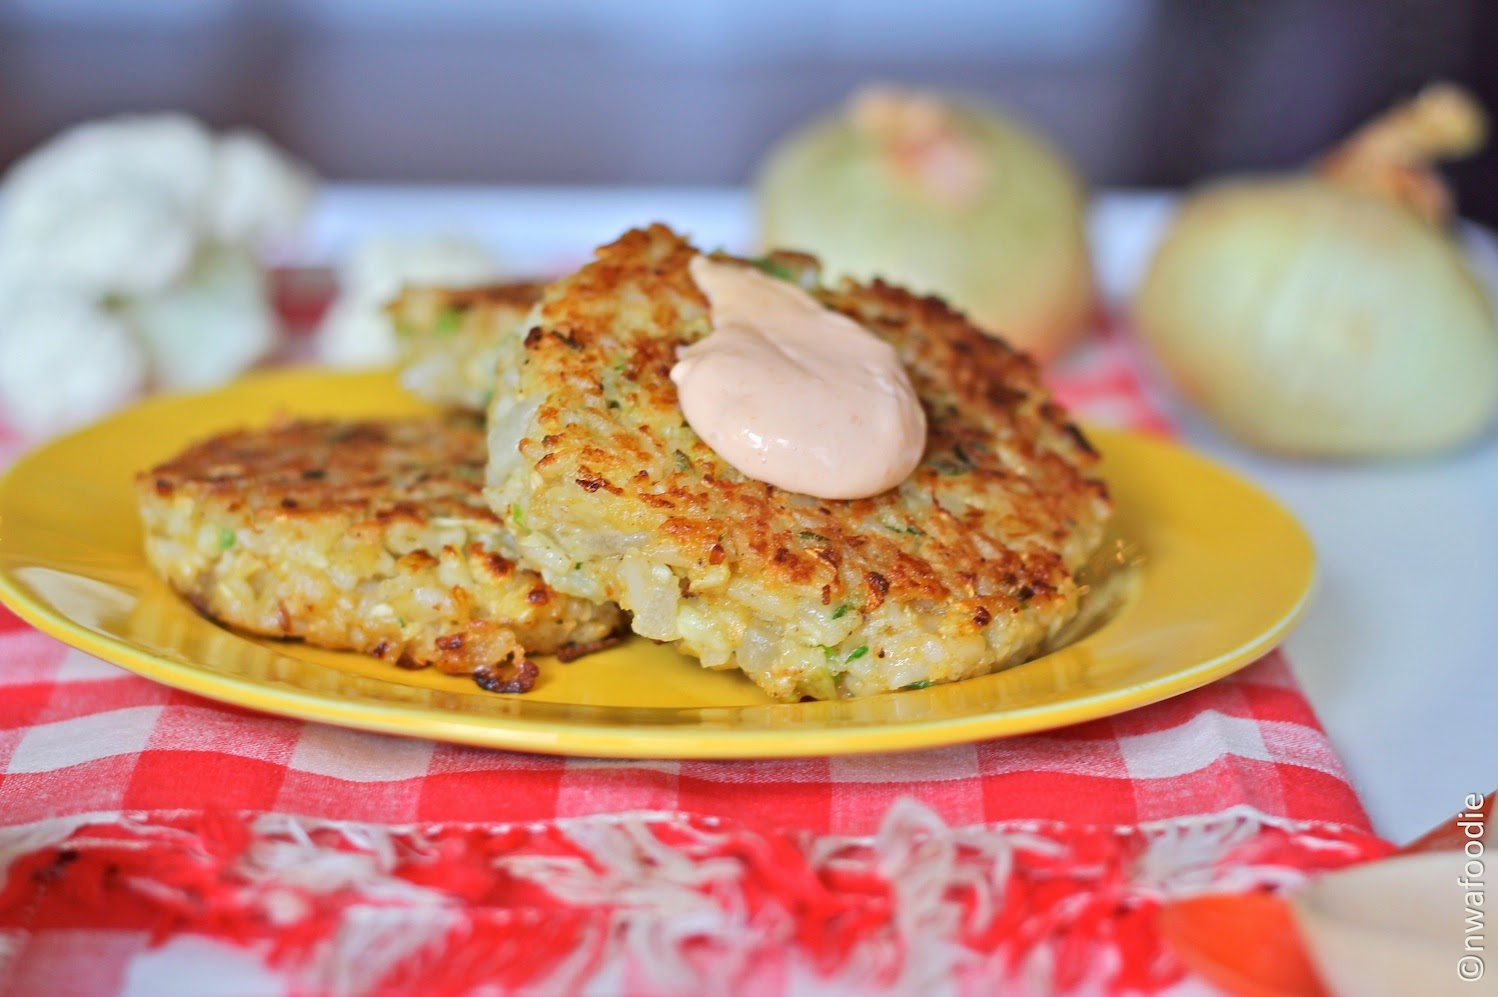 How to make cauliflower and rice croquettes patties cakes (c)nwafoodie